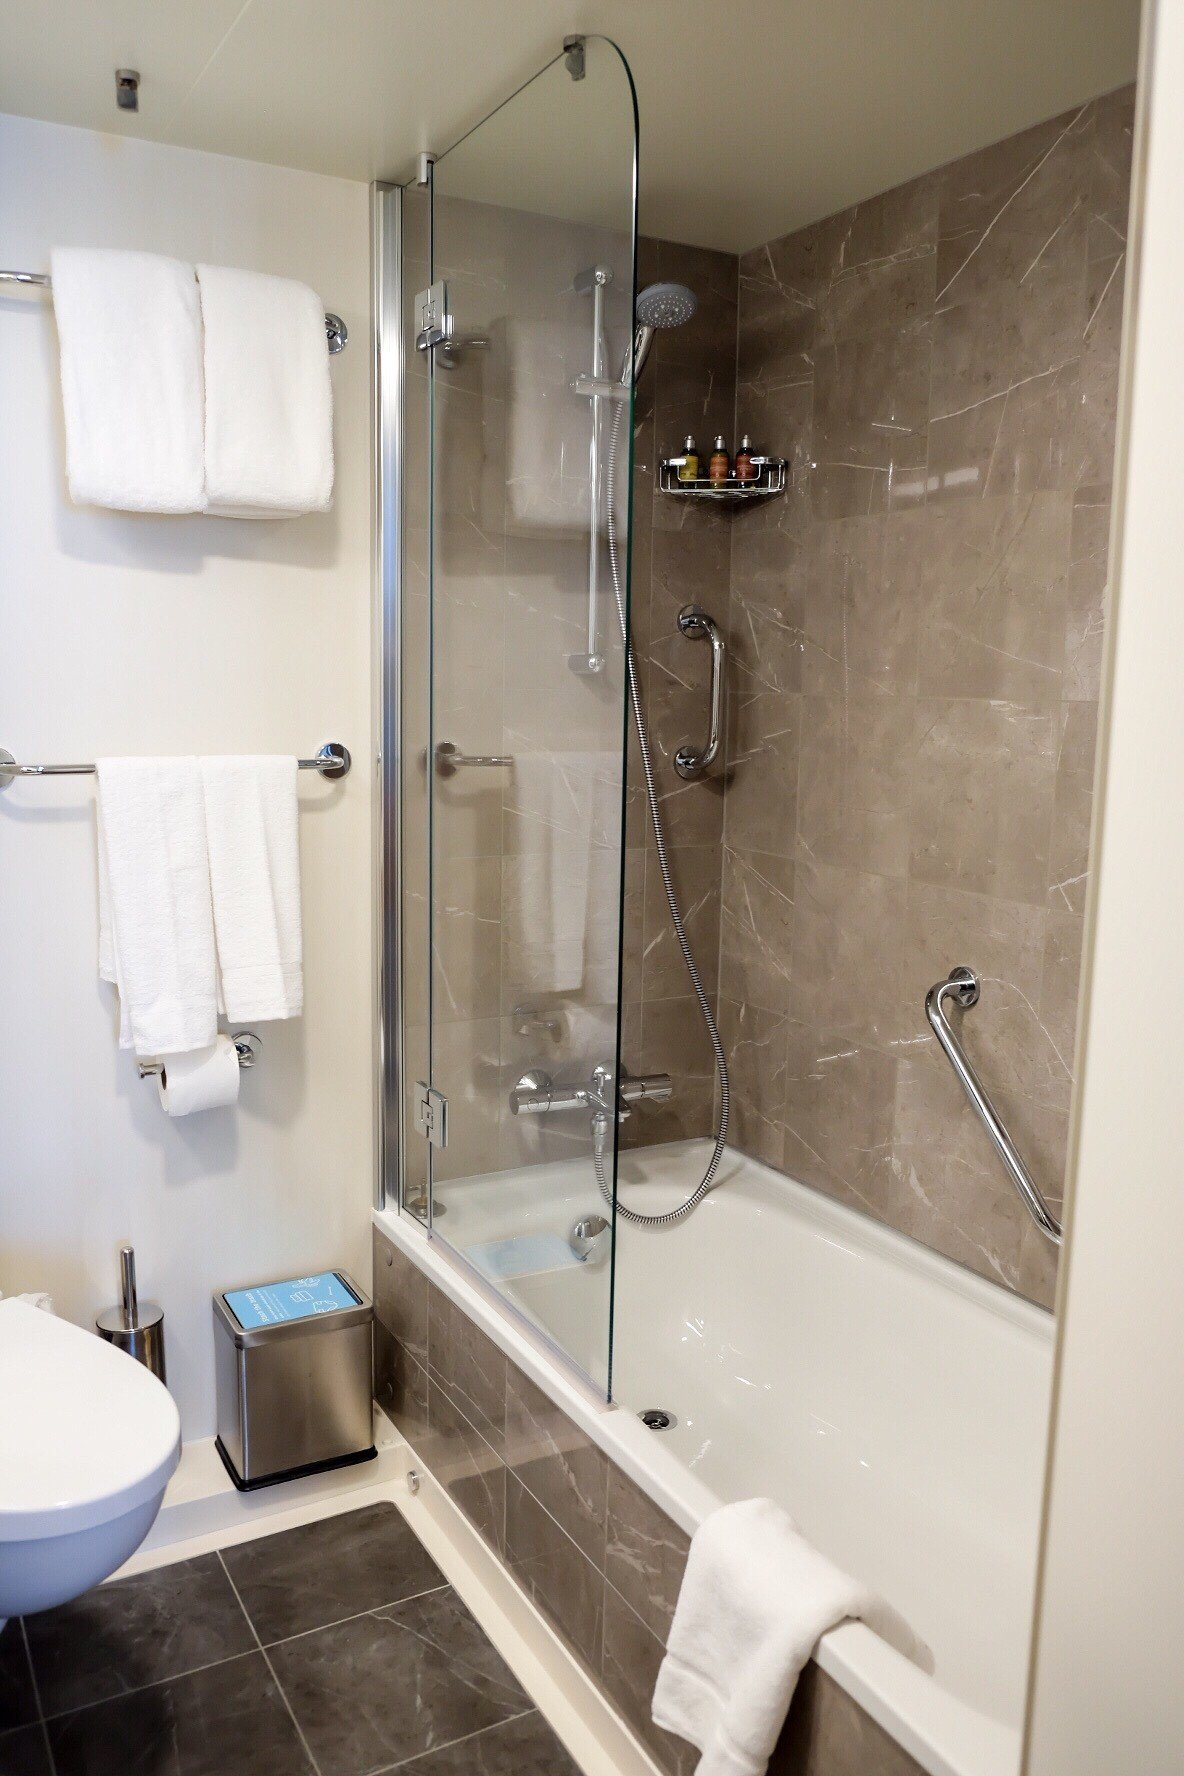 Grande suite stateroom bathroom with bath and shower